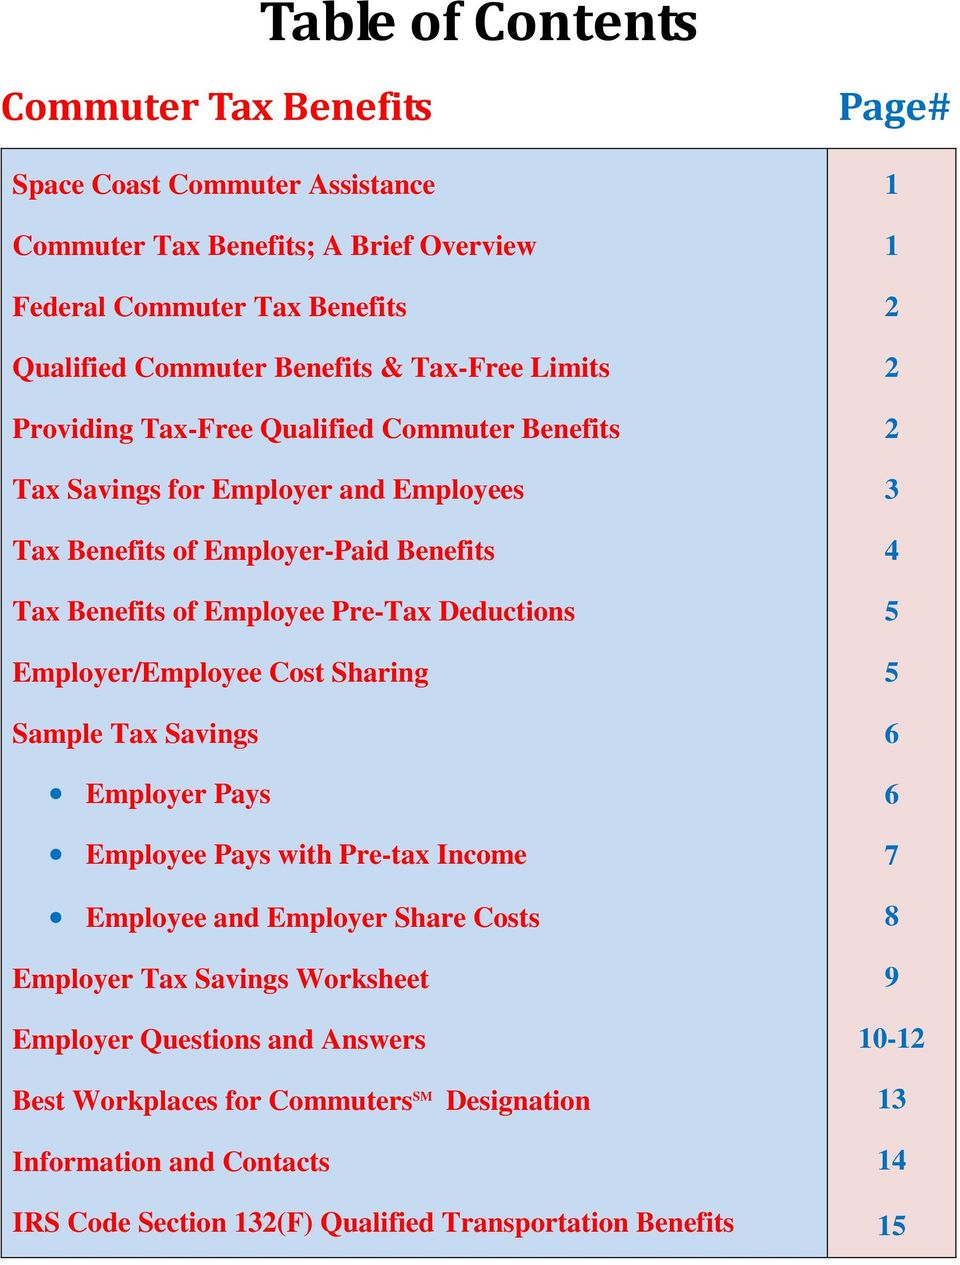 Cost Sharing Sample Tax Savings Employer Pays Employee Pays with Pre-tax Income Employee and Employer Share Costs Employer Tax Savings Worksheet Employer Questions and